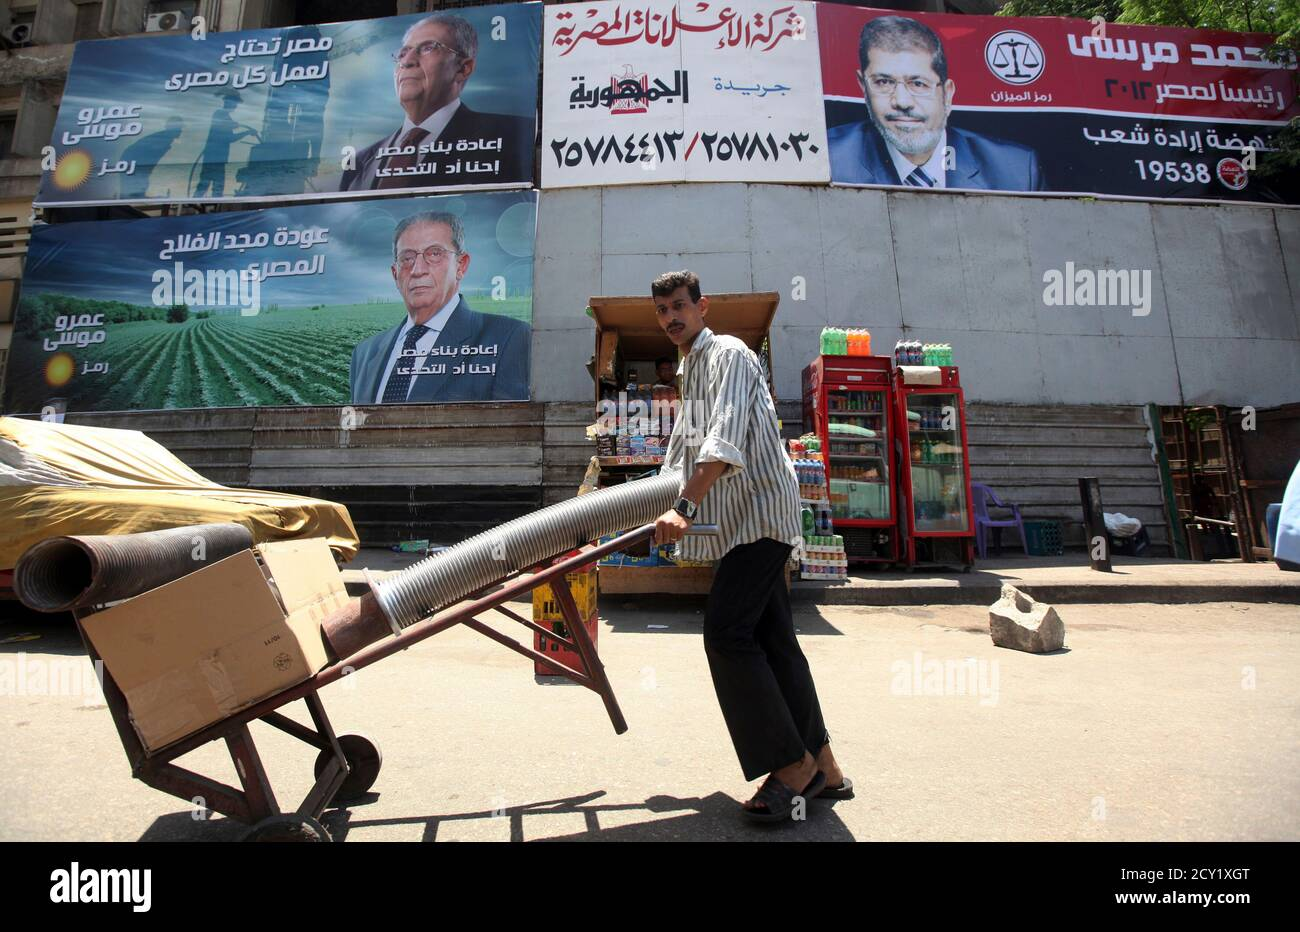 """A man walks under campaign election billboards of presidential candidate and former Arab League secretary general Amr Moussa (L) and presidential candidate and head of the Muslim Brotherhood Mohamed Mursi (R), in Cairo May 7, 2012. Voting starts on May 23-24 in the election to choose a new president after Hosni Mubarak was turfed out of office last year. The billboards read, """"Amr Moussa, we are up to the challenge,"""" (L) and """"president for Egypt."""" (R) REUTERS/Amr Abdallah Dalsh  (EGYPT - Tags: POLITICS ELECTIONS) Stock Photo"""